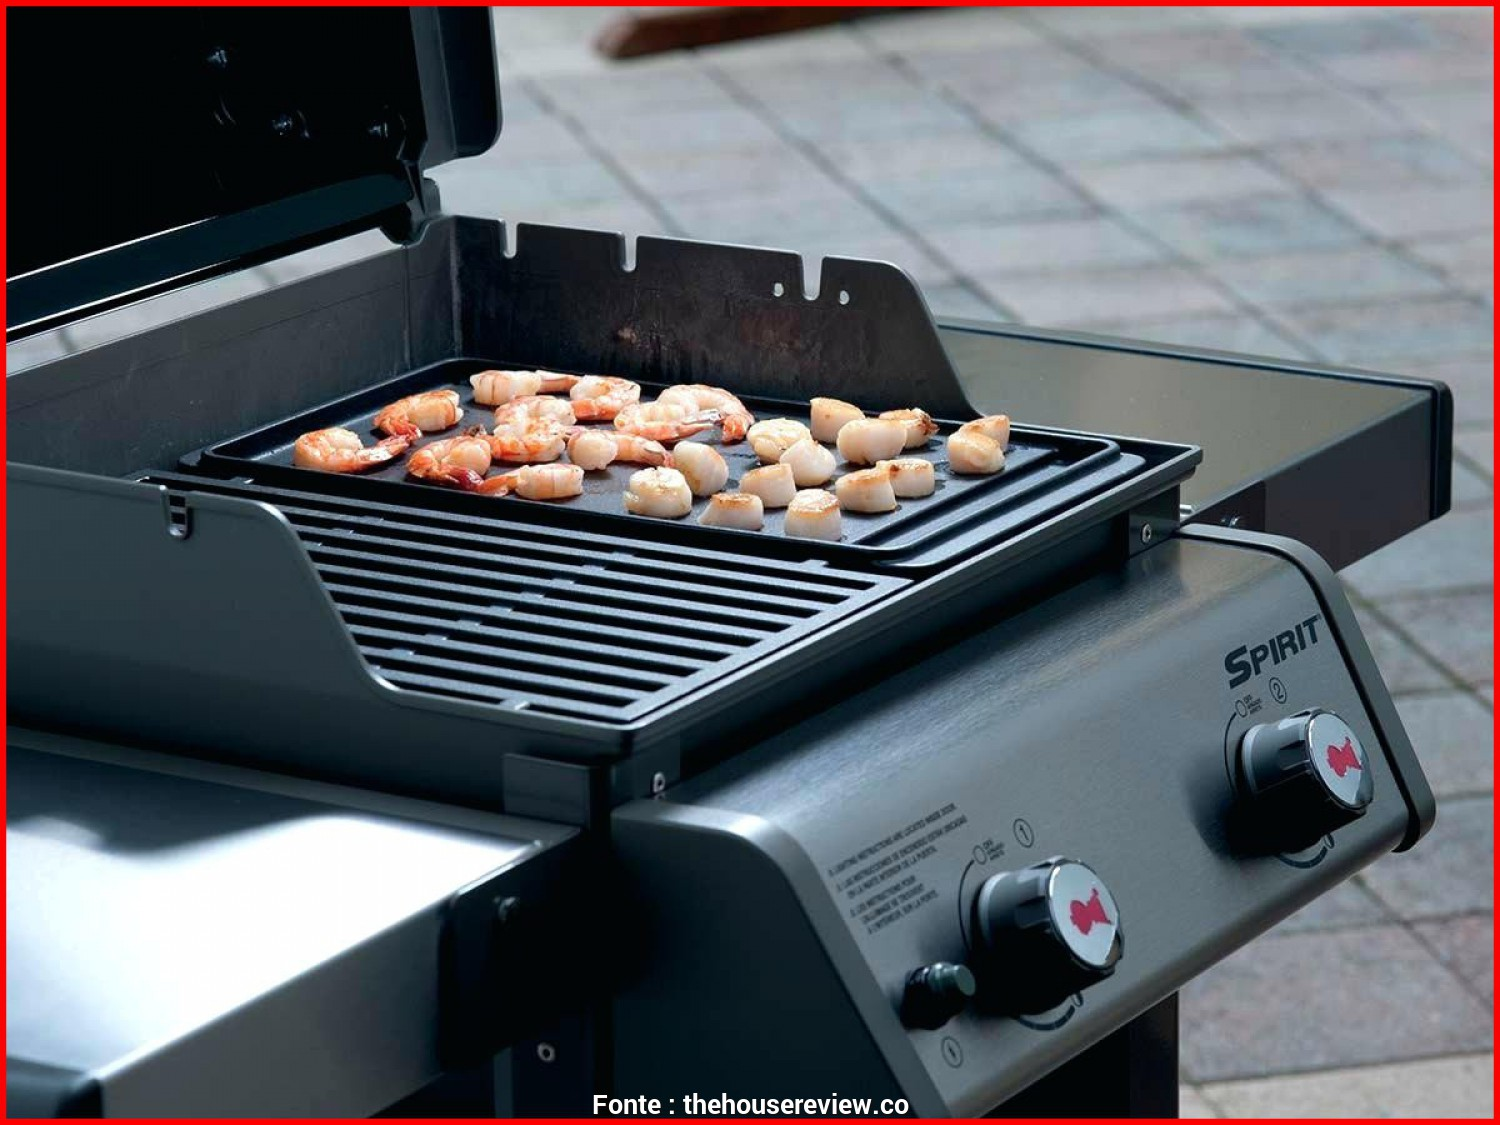 Barbecue A Pellet Leroy Merlin, Minimalista Awesome Weber Plancha Barbecue Plancha, Grill, Cher Pour Leroy Merlin Forum Weber With Leroy Merlin Barbecue A Gas